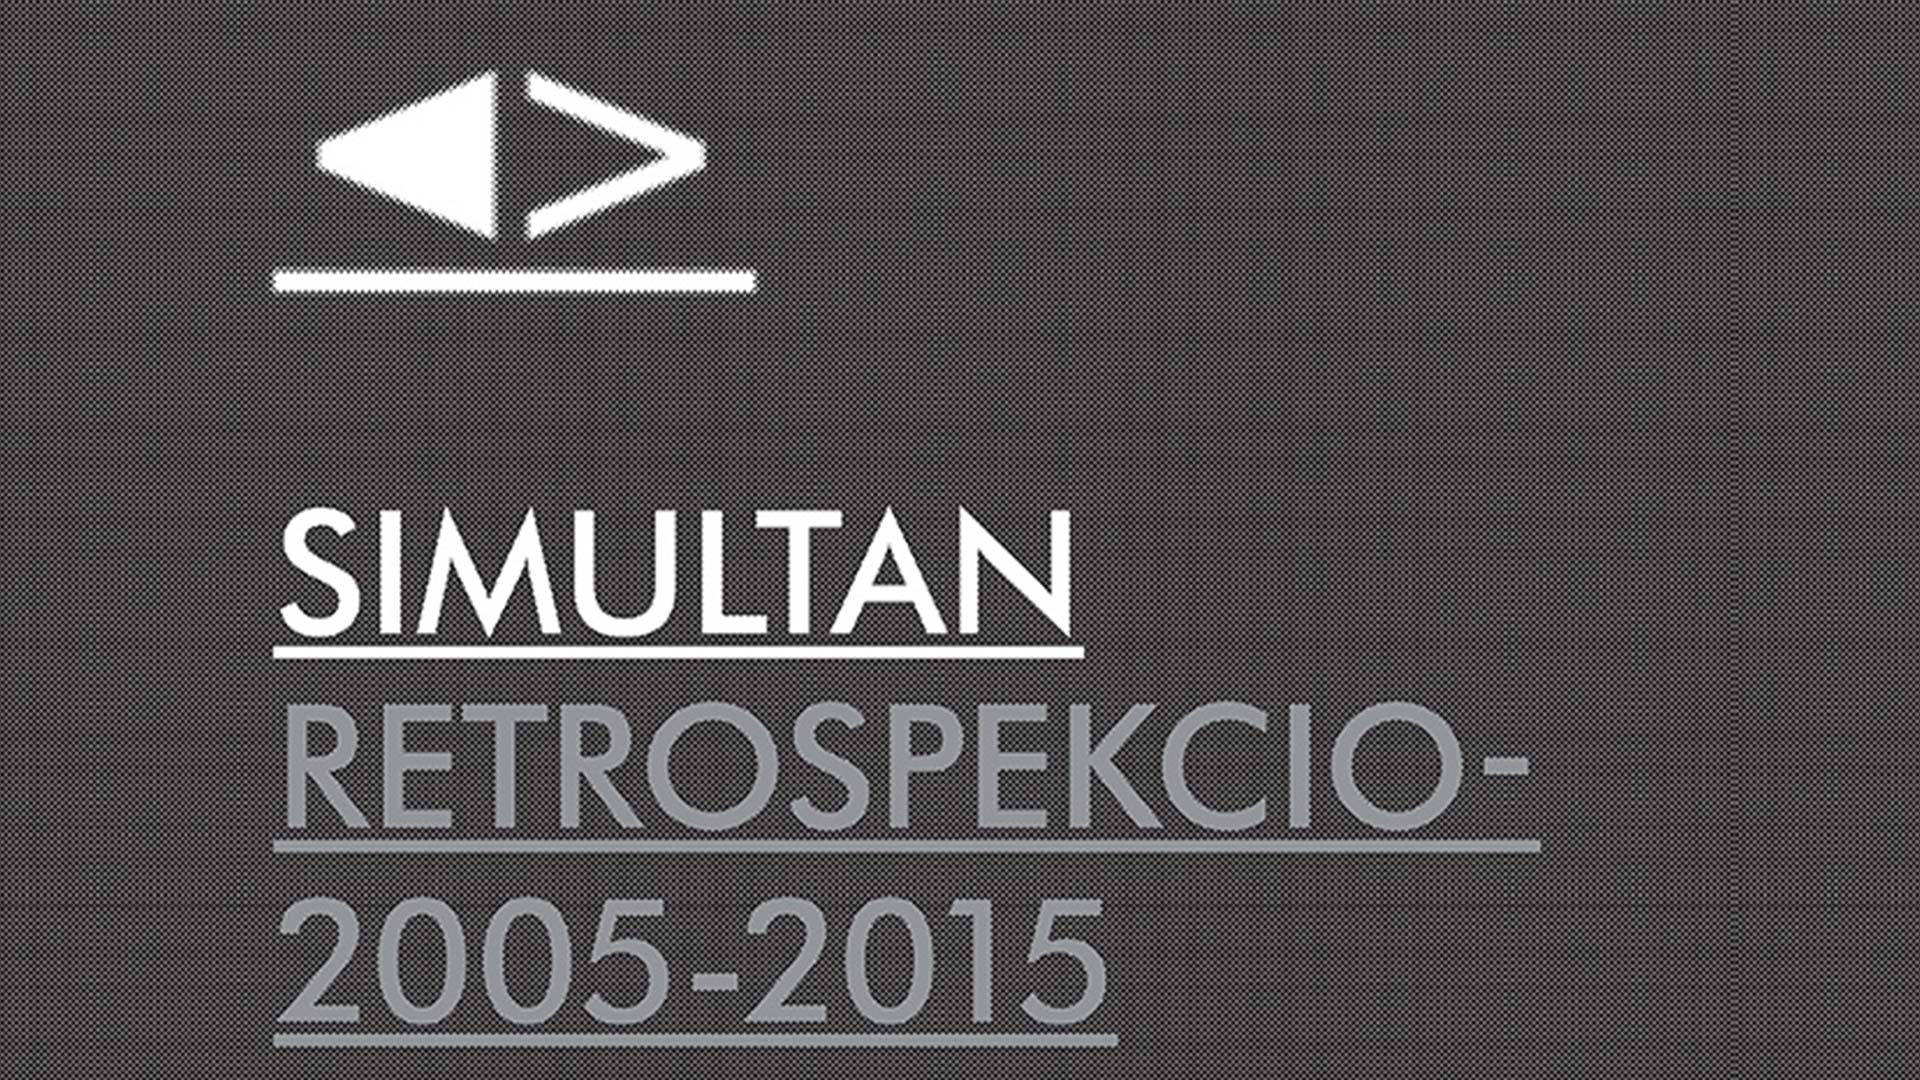 SIMULTAN RETROSCPECTION 2005-2015